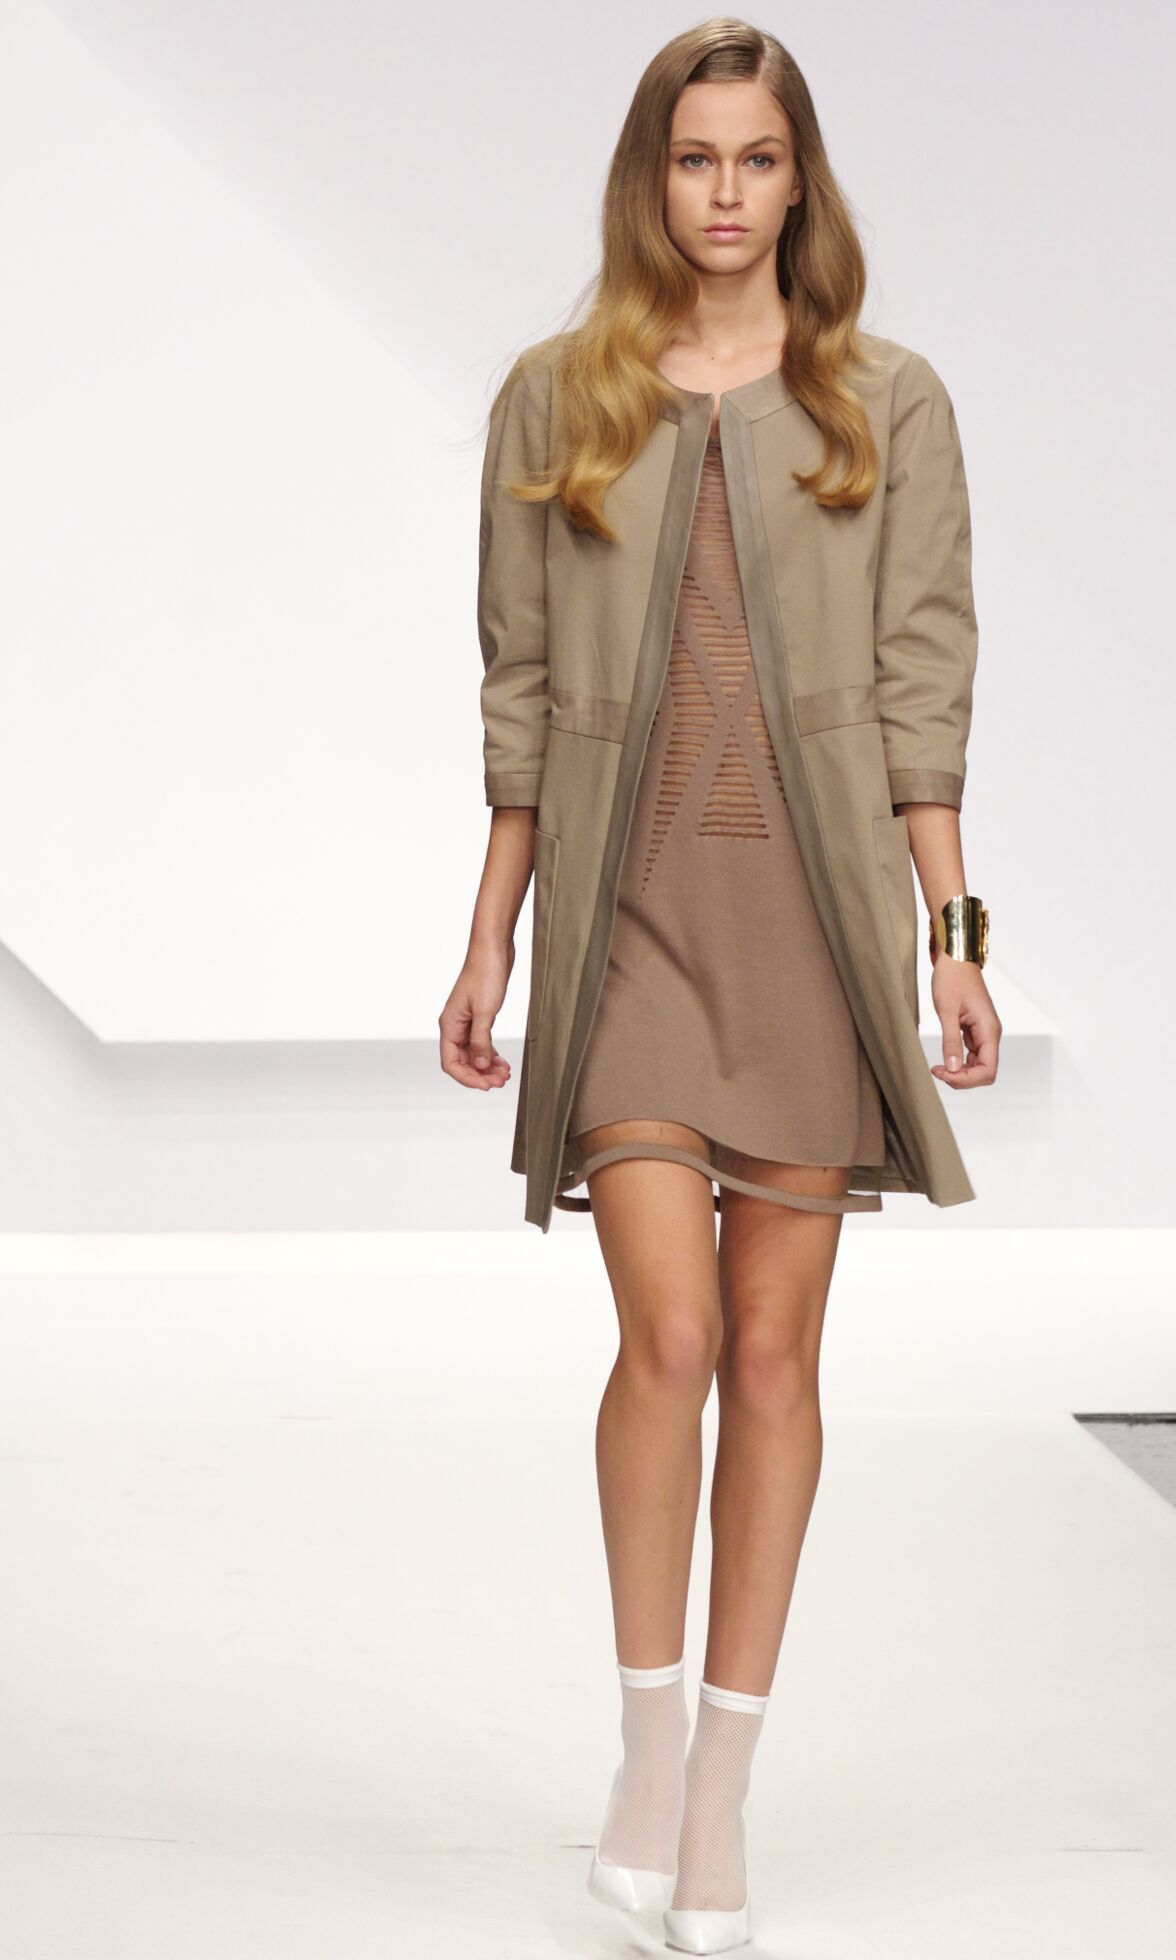 KRIZIA SPRING SUMMER 2014 WOMEN'S COLLECTION